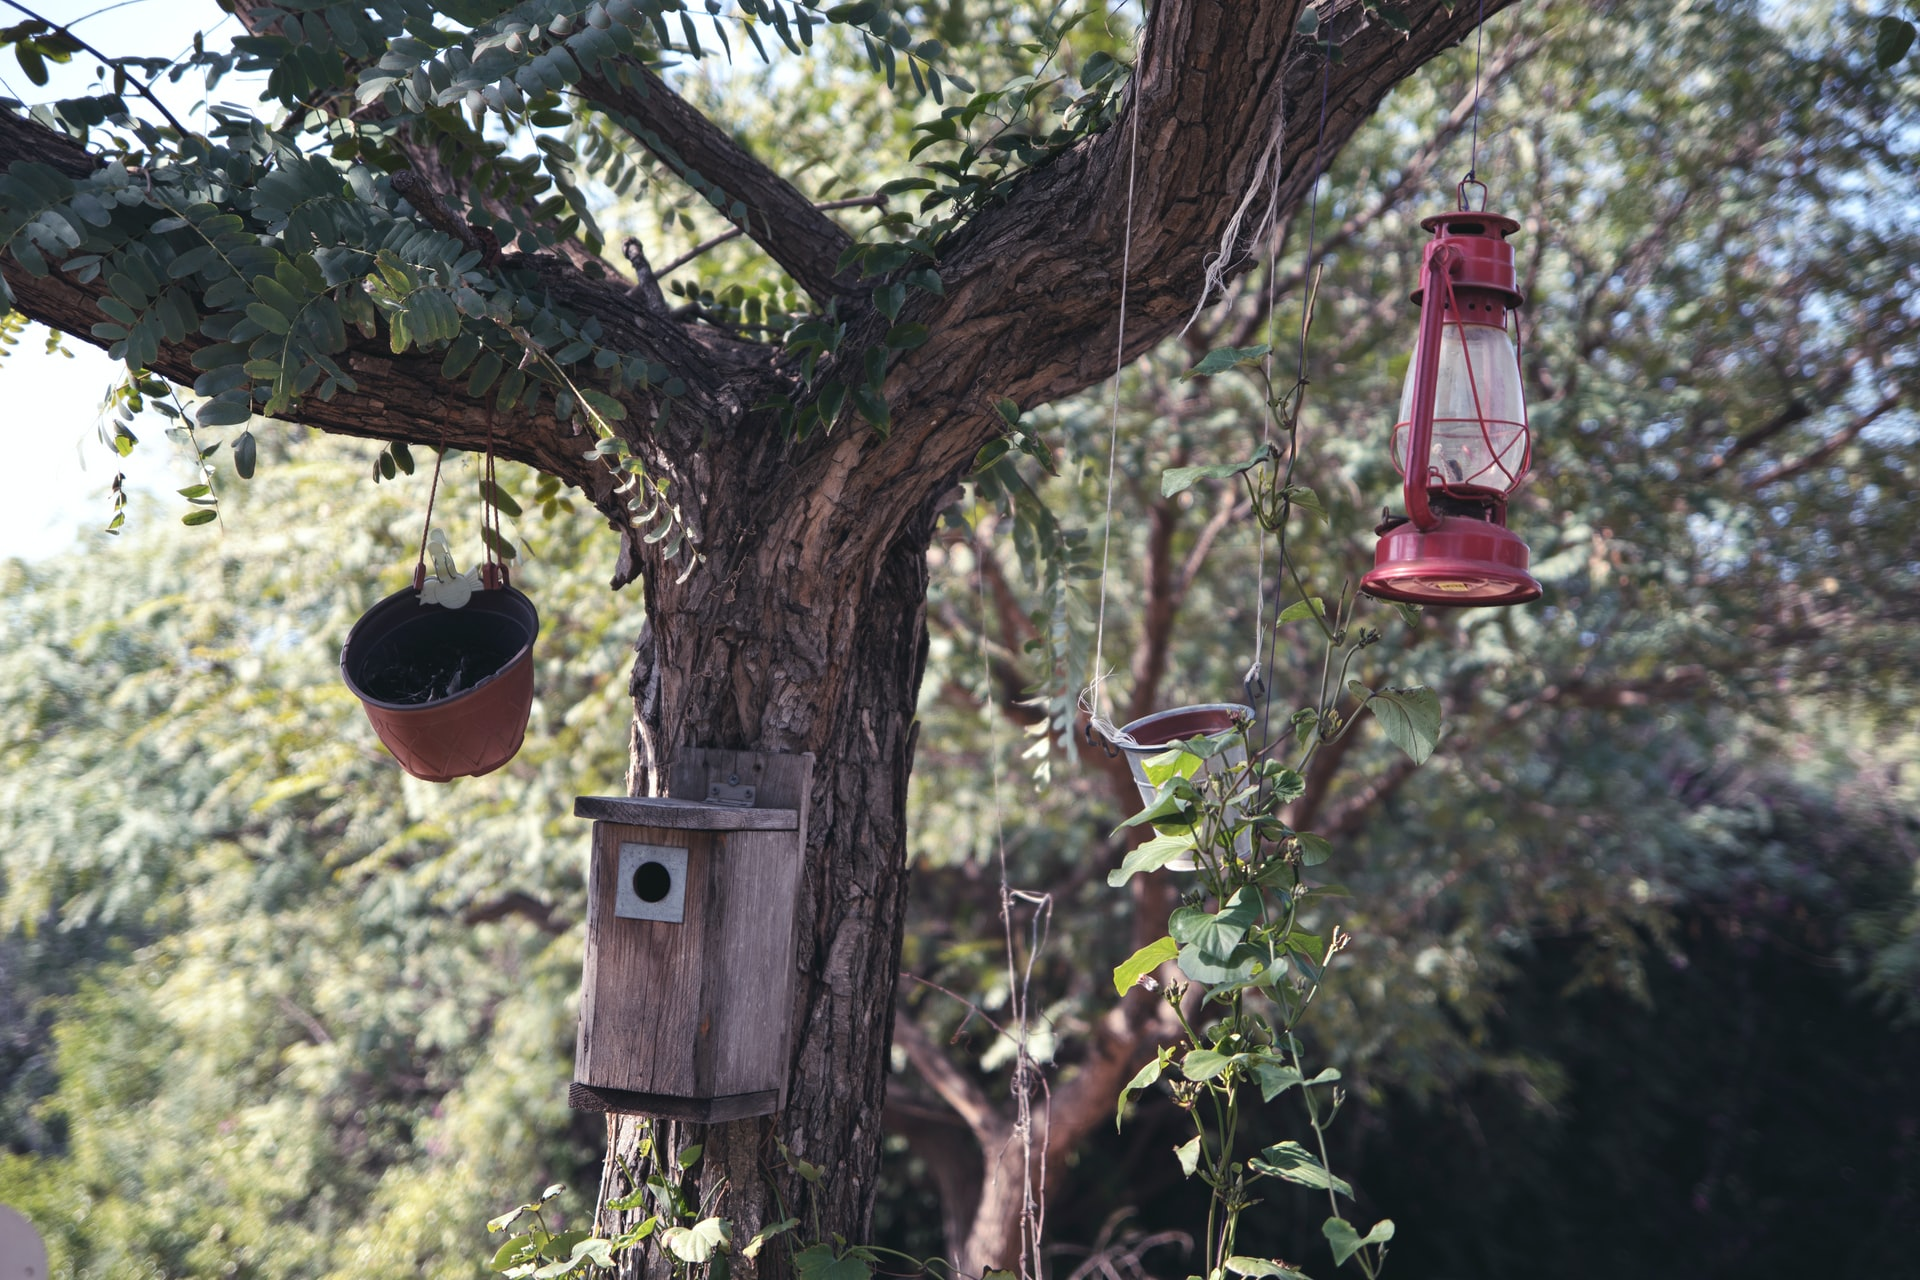 bird feeders and bird house hanging from a tree